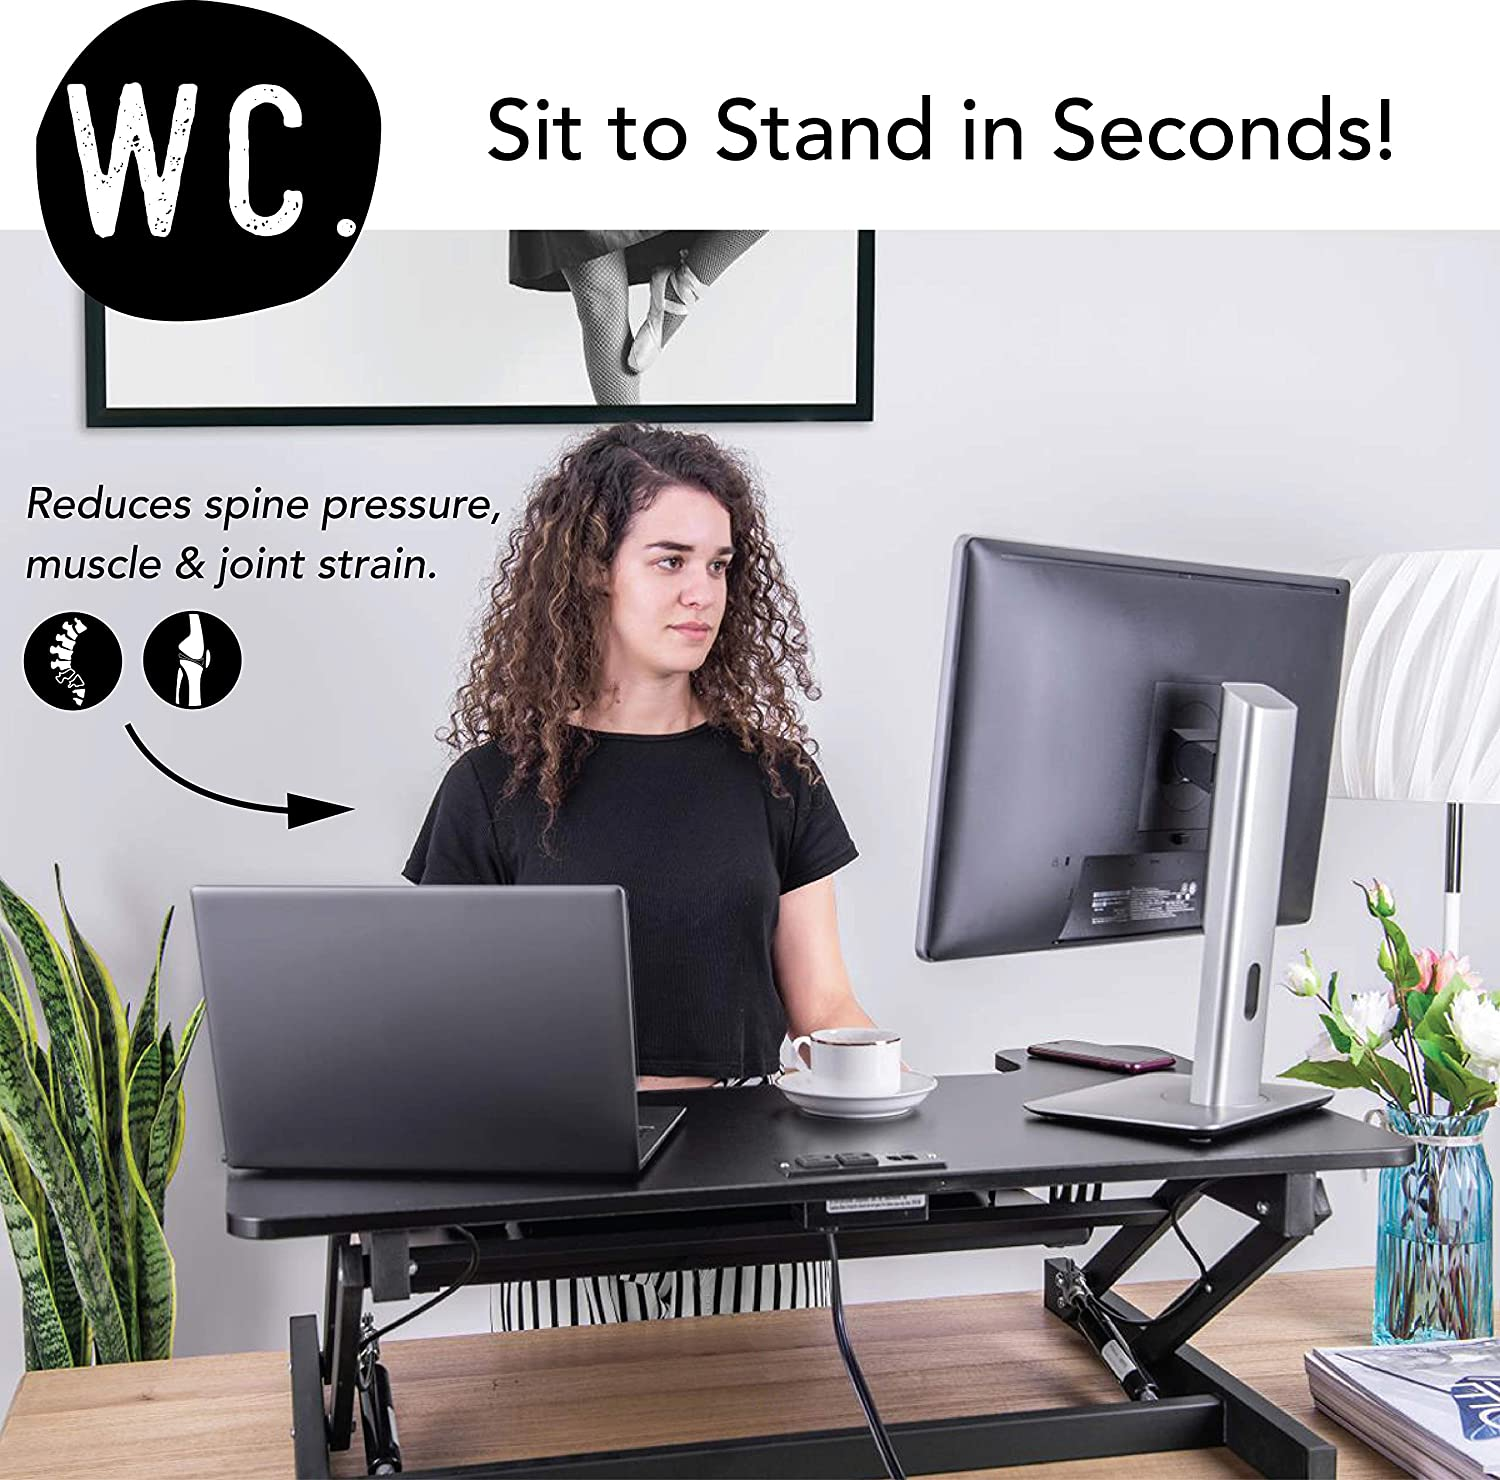 Working City Smart-Lift 36 Smart Two-Tier Height Adjustable Standing Desk Converter with 2 Outlet, 2 USB Port, 9.8 ft Cord Sit to Stand Up Instantly ETL Certified – Black